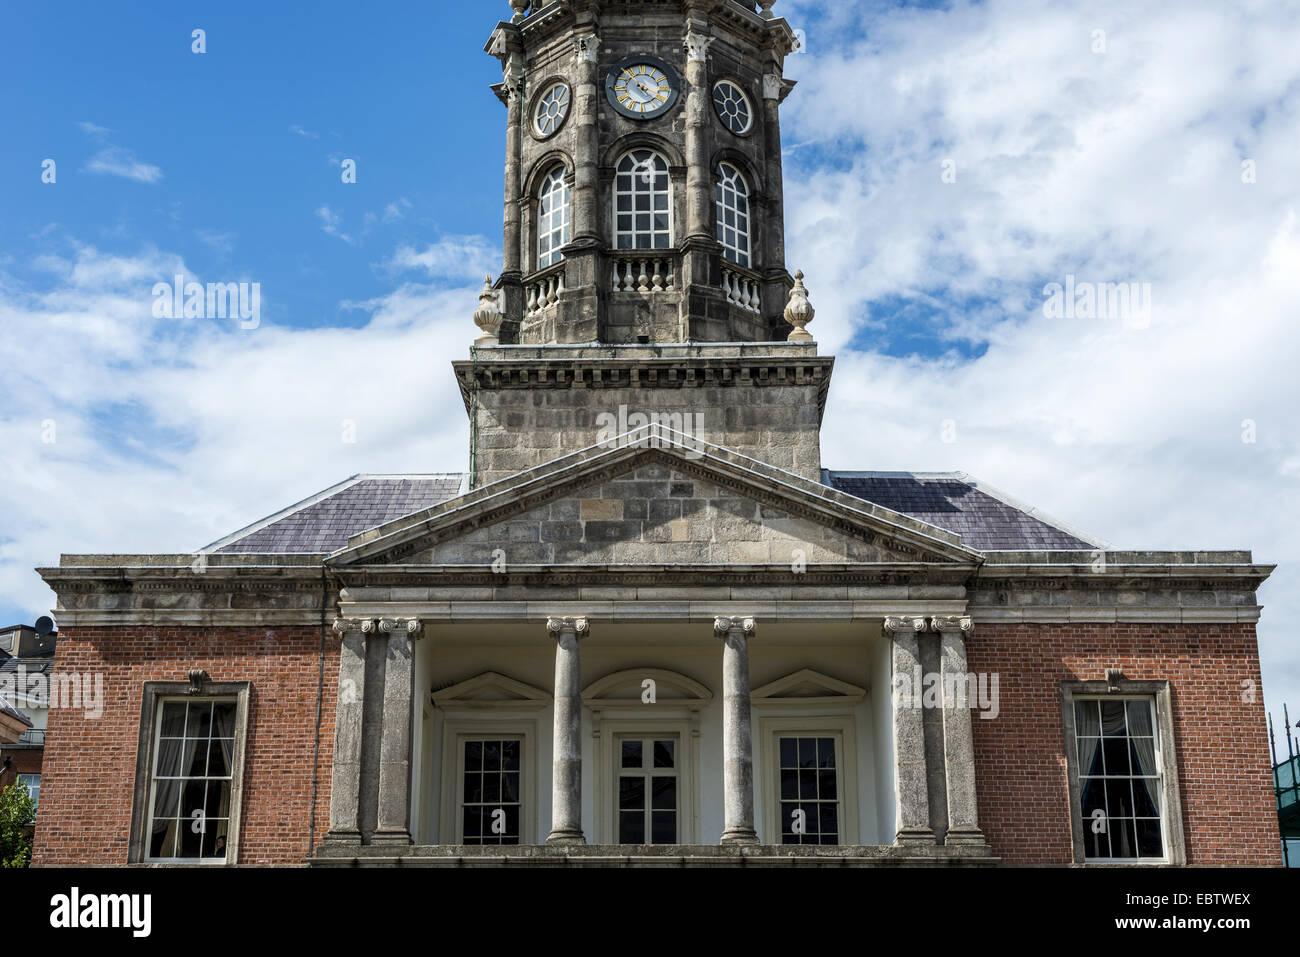 The Bedford Tower in Dublin Castle in the centrepiece of the Castle's Georgian courtyard flanked by the gates of Stock Photo